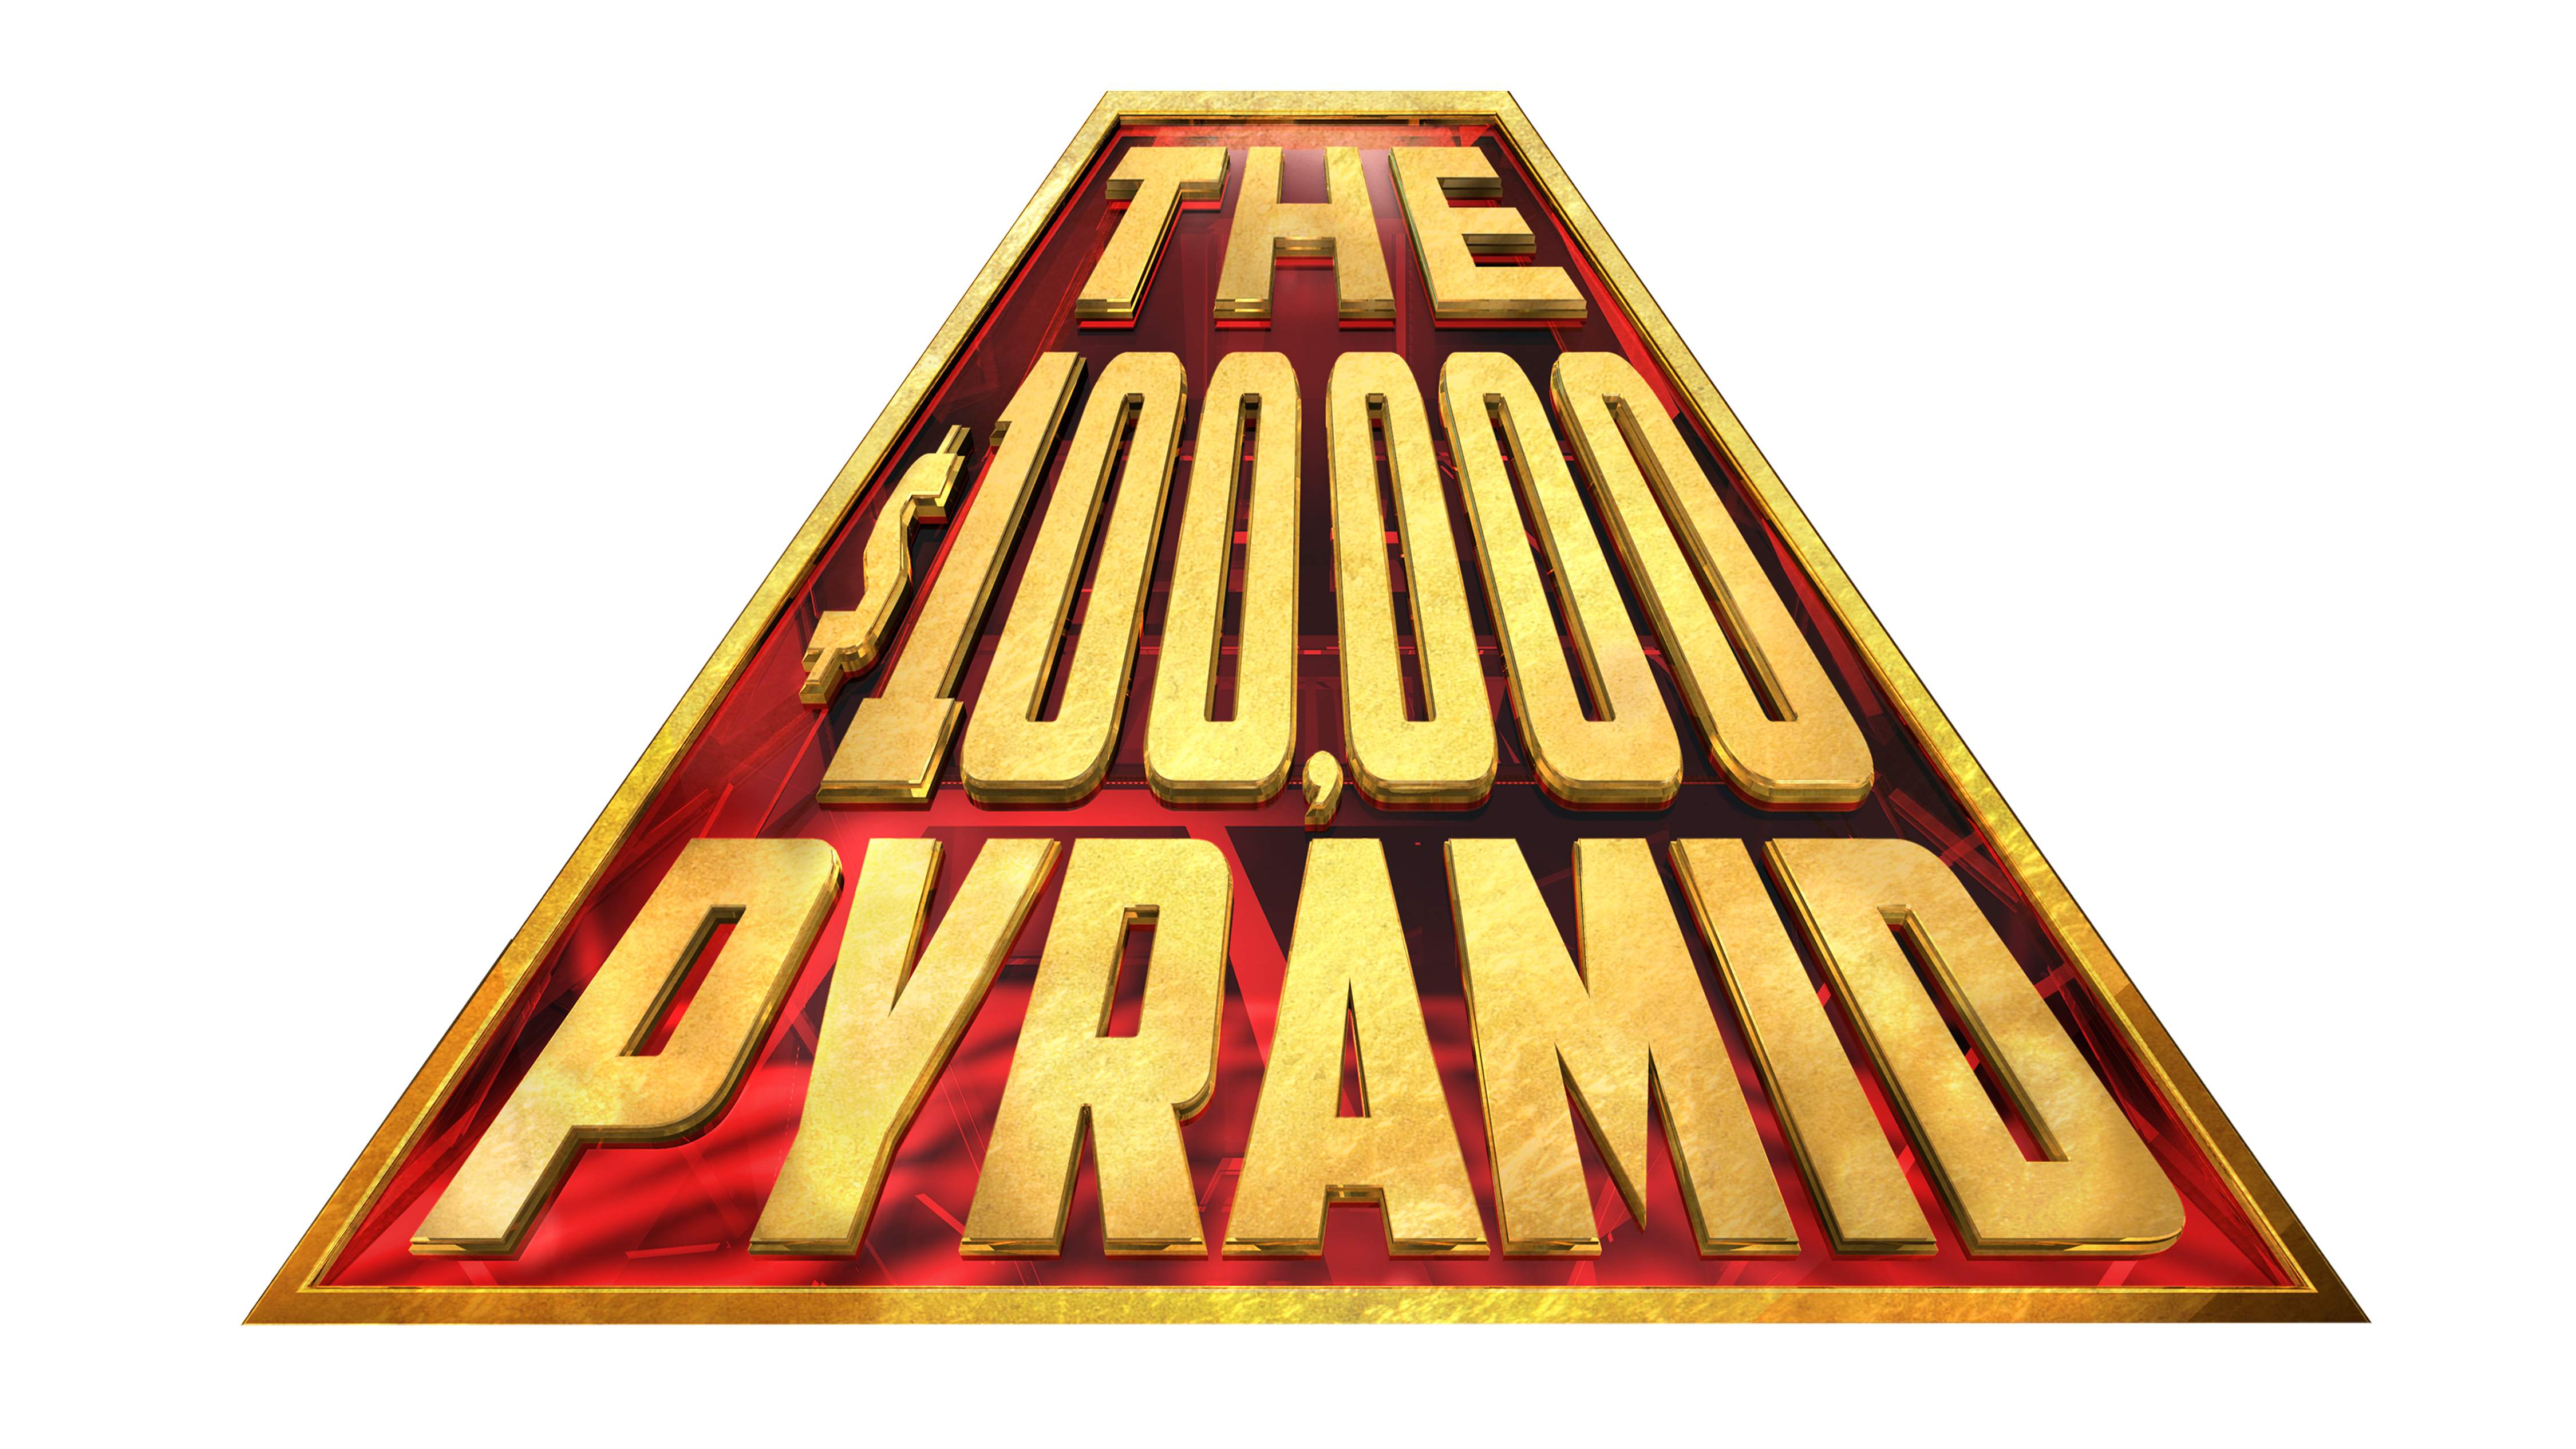 100000_PYRAMID_THE_2016_S01toS04_Title_T